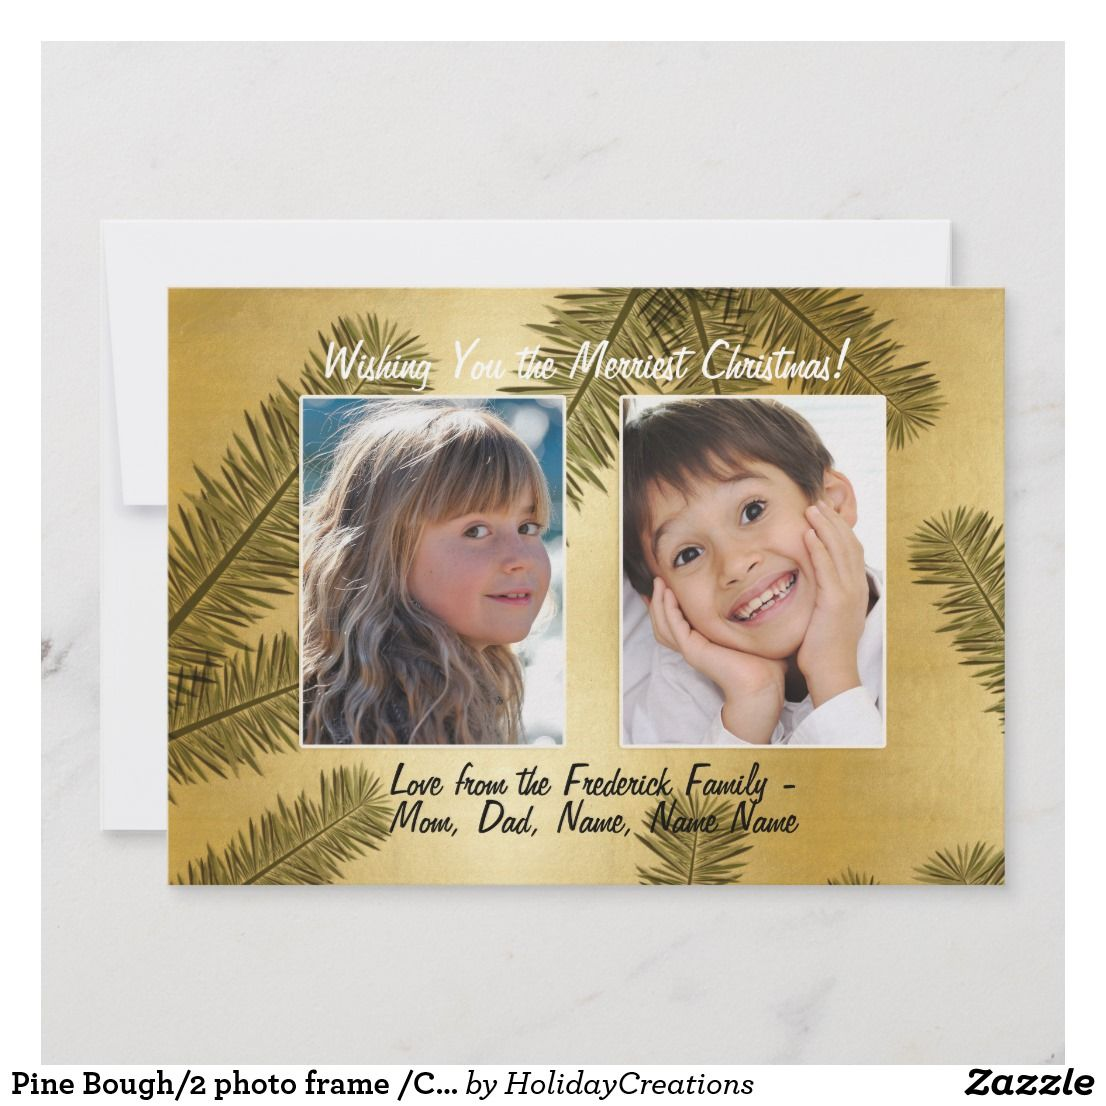 Pine Bough 2 Photo Frame Christmas Holiday Card Instead Of Printing Those One Sided Christmas Pho Christmas Photo Cards Holiday Images Christmas Holiday Cards